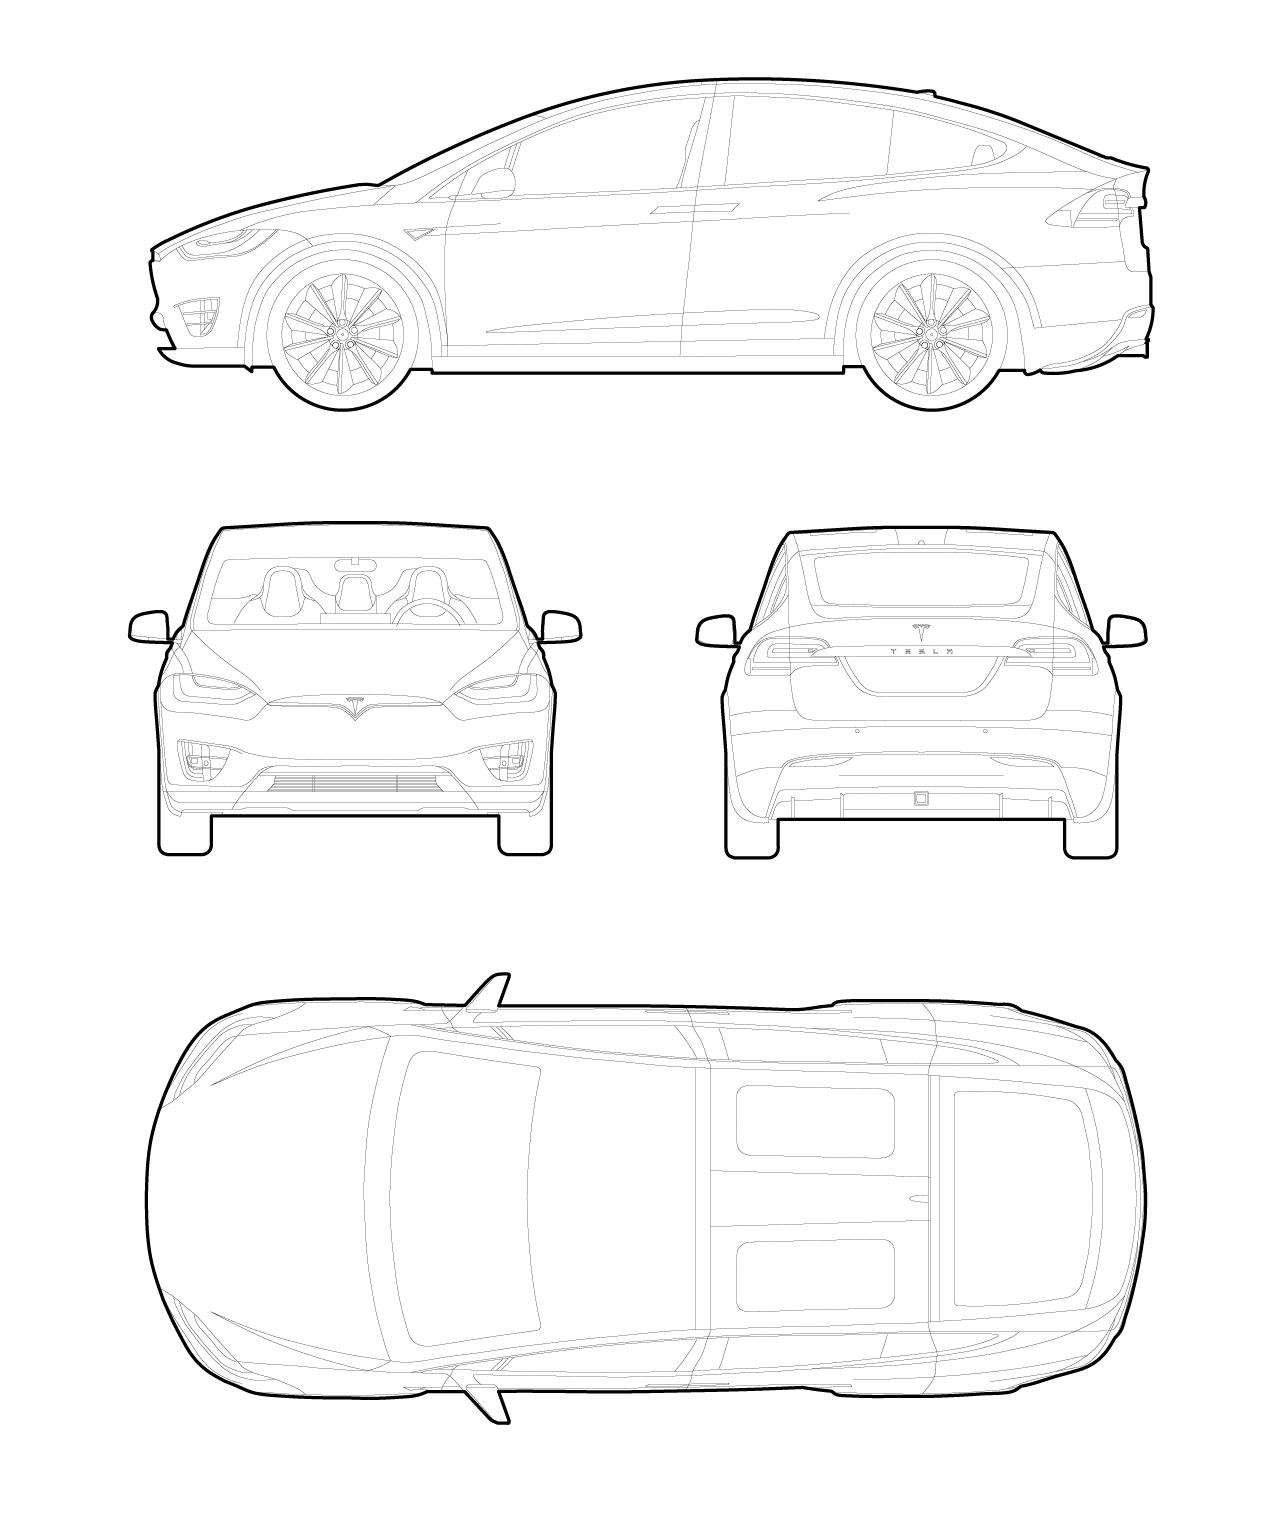 Drawing of a Tesla model X cars dwg